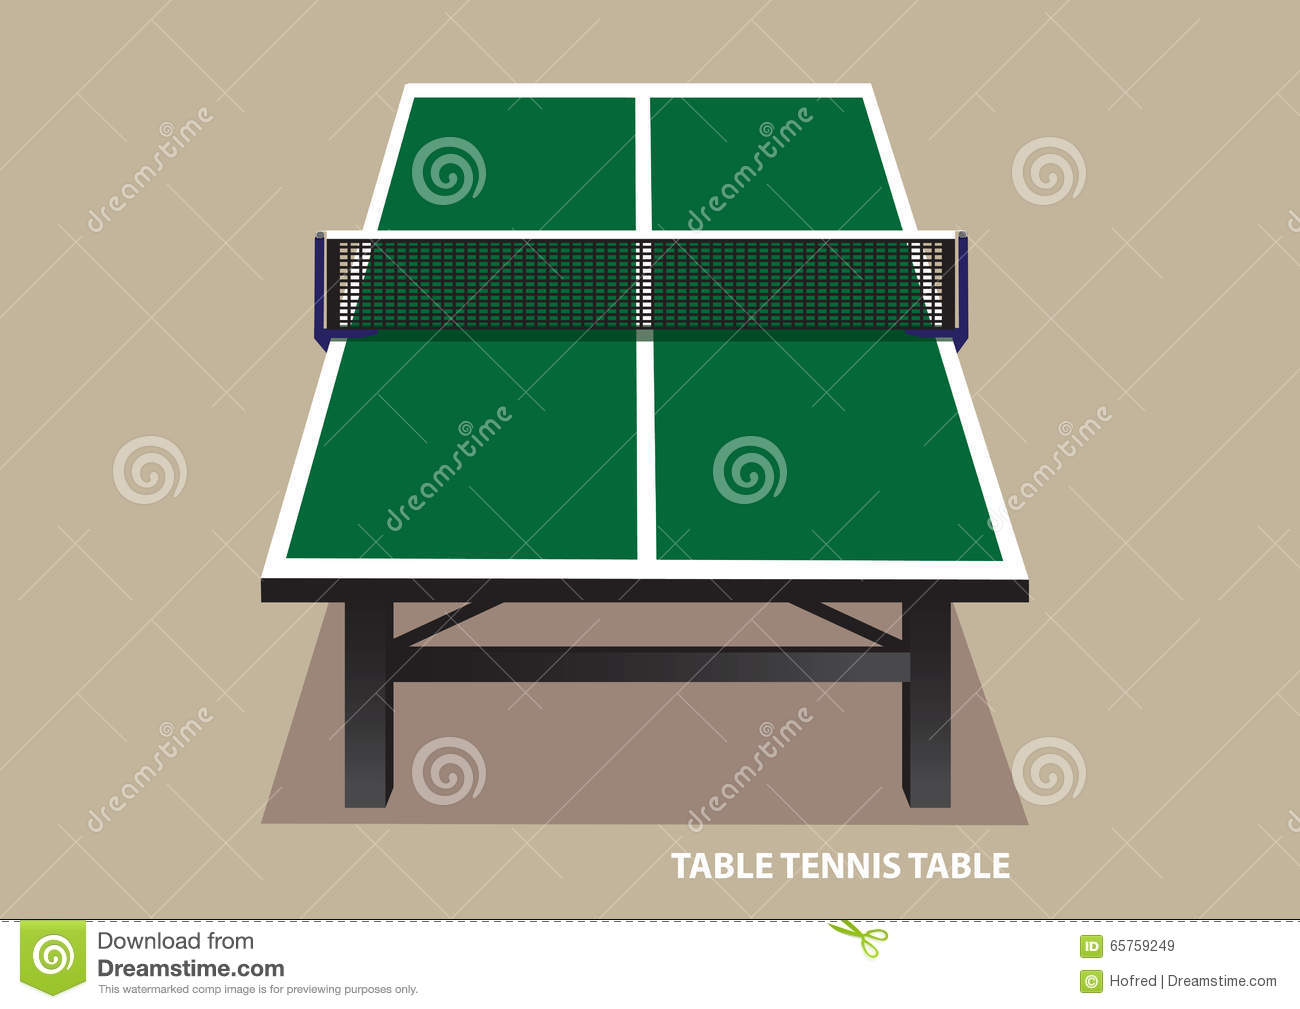 Ping pong table top - Table Tennis Table Top View Vector Illustration Stock Vector